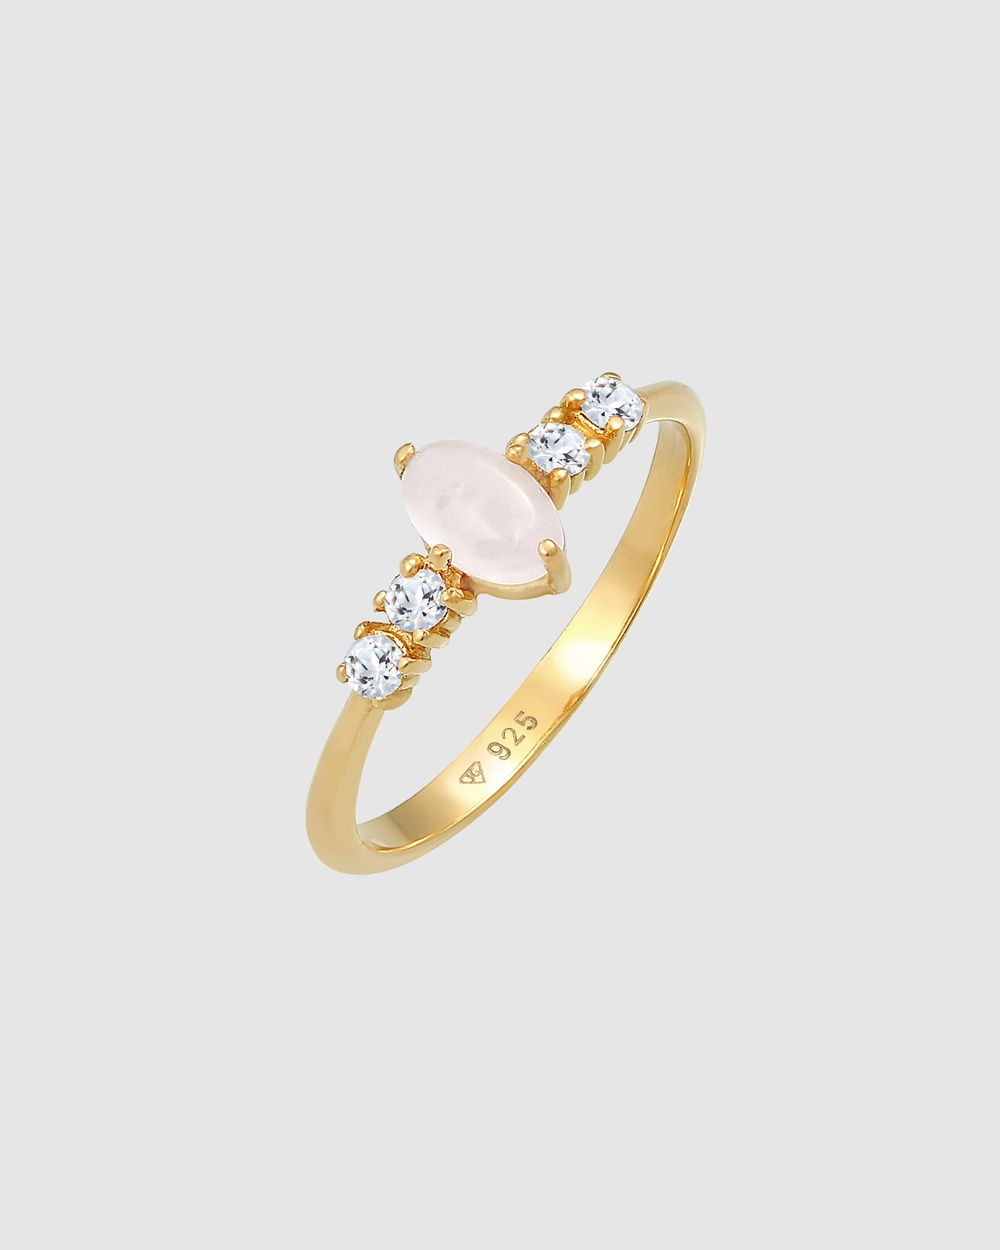 Elli Jewelry Ring Oval Engagement Elegant Sparkling with Pink Quartz and Topaz in 925 Sterling Silver Gold Plated Jewellery Gold